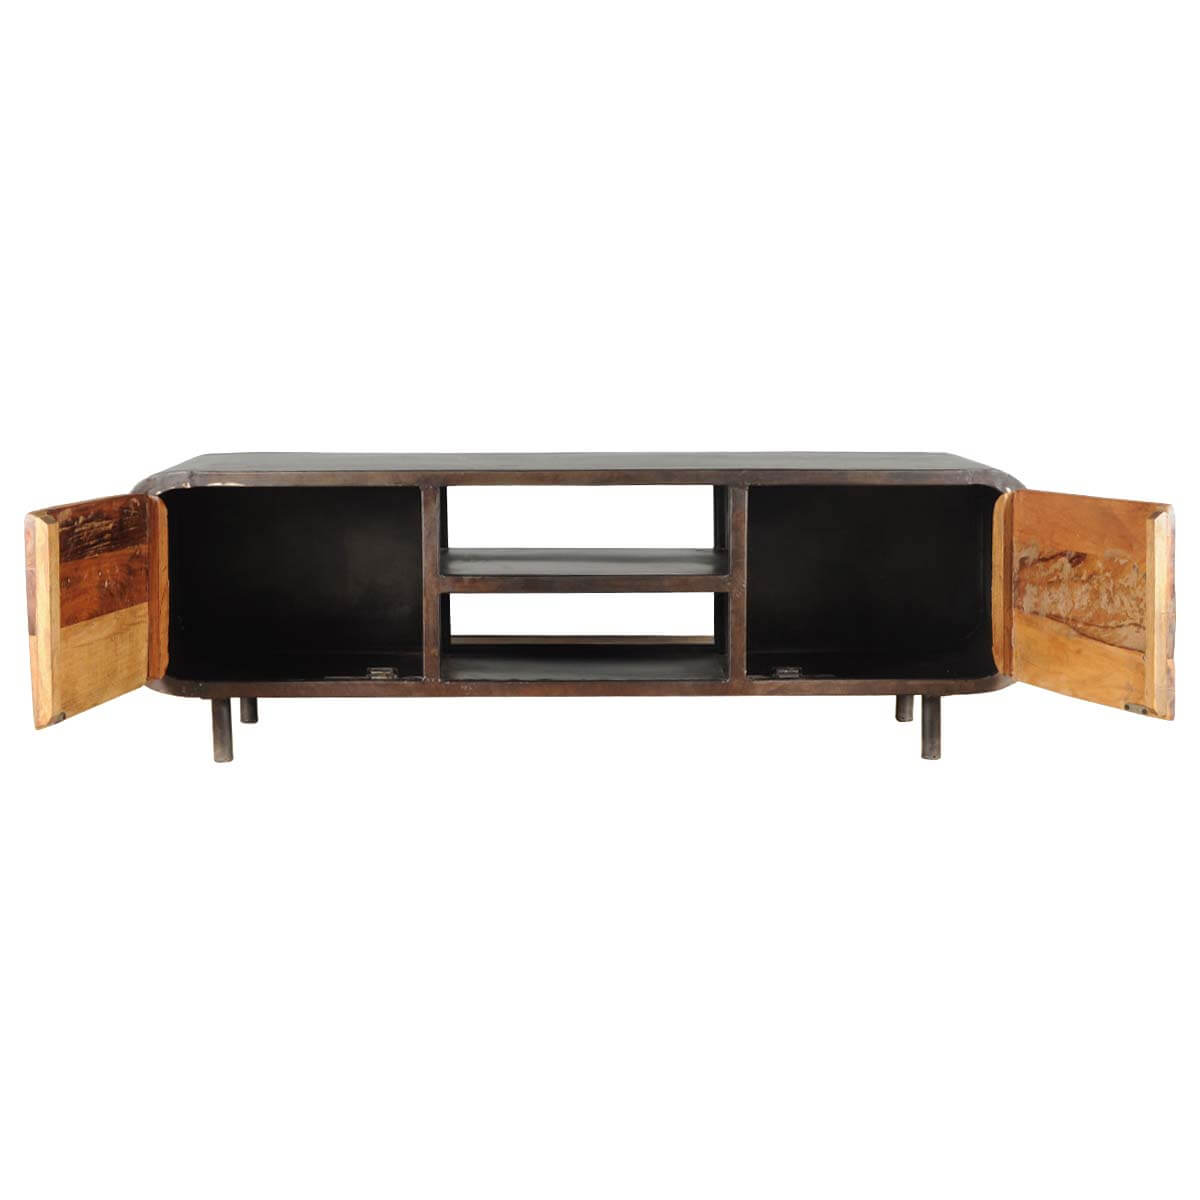 Reclaimed Media Cabinet Reclaimed Wood Iron 1950s Retro Media Console Cabinet